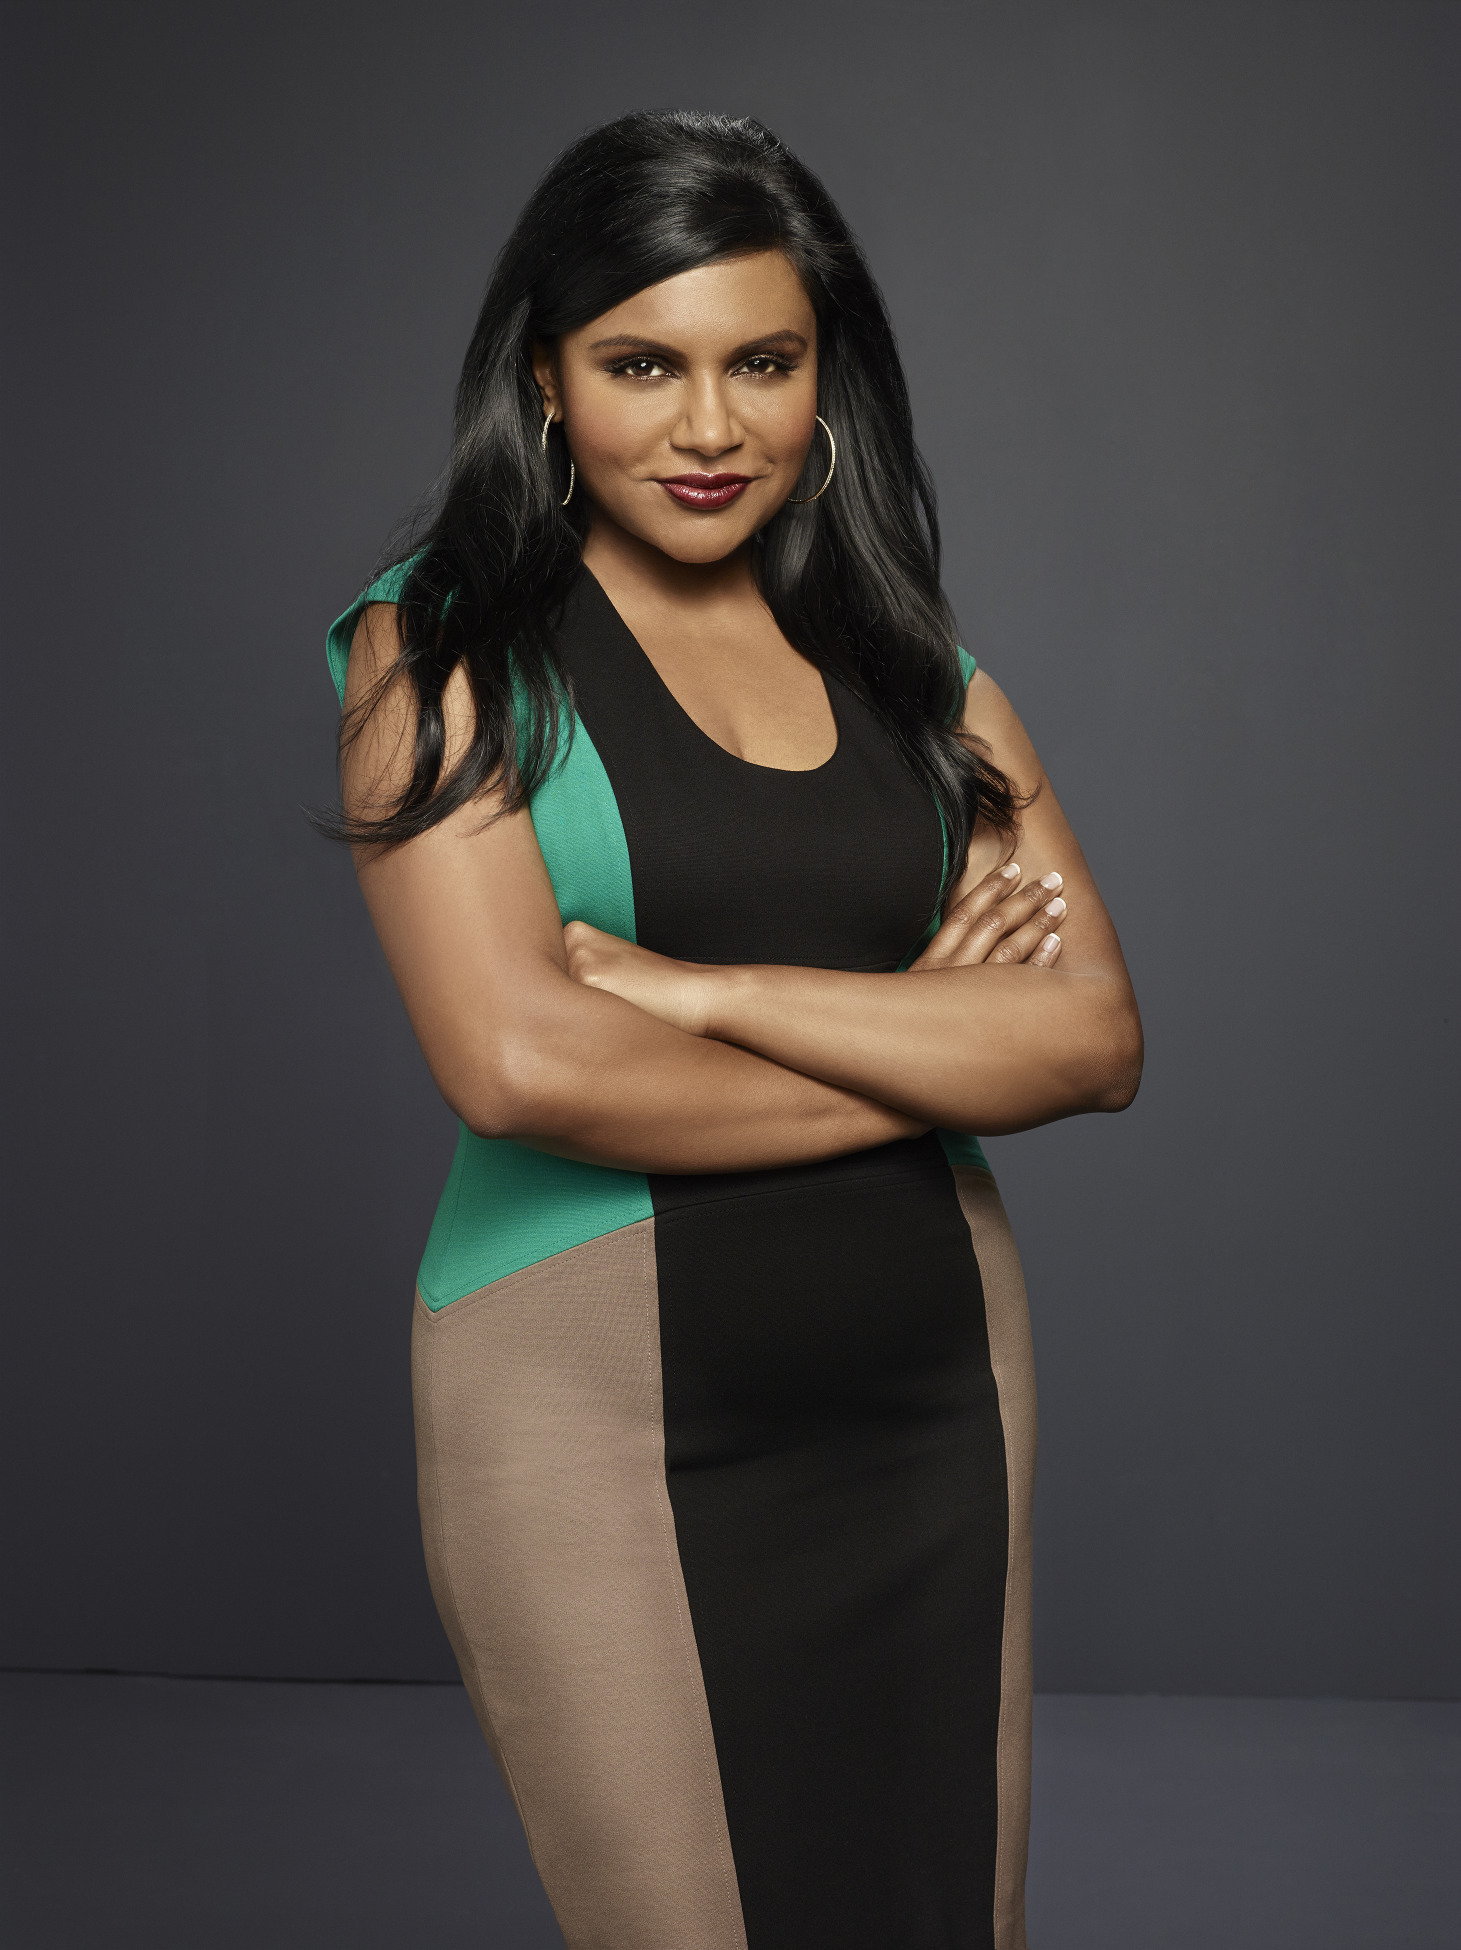 the mindy kaling project Nbc has ordered a new series from mindy kaling and mindy project executive producer charlie grandy titled champions.